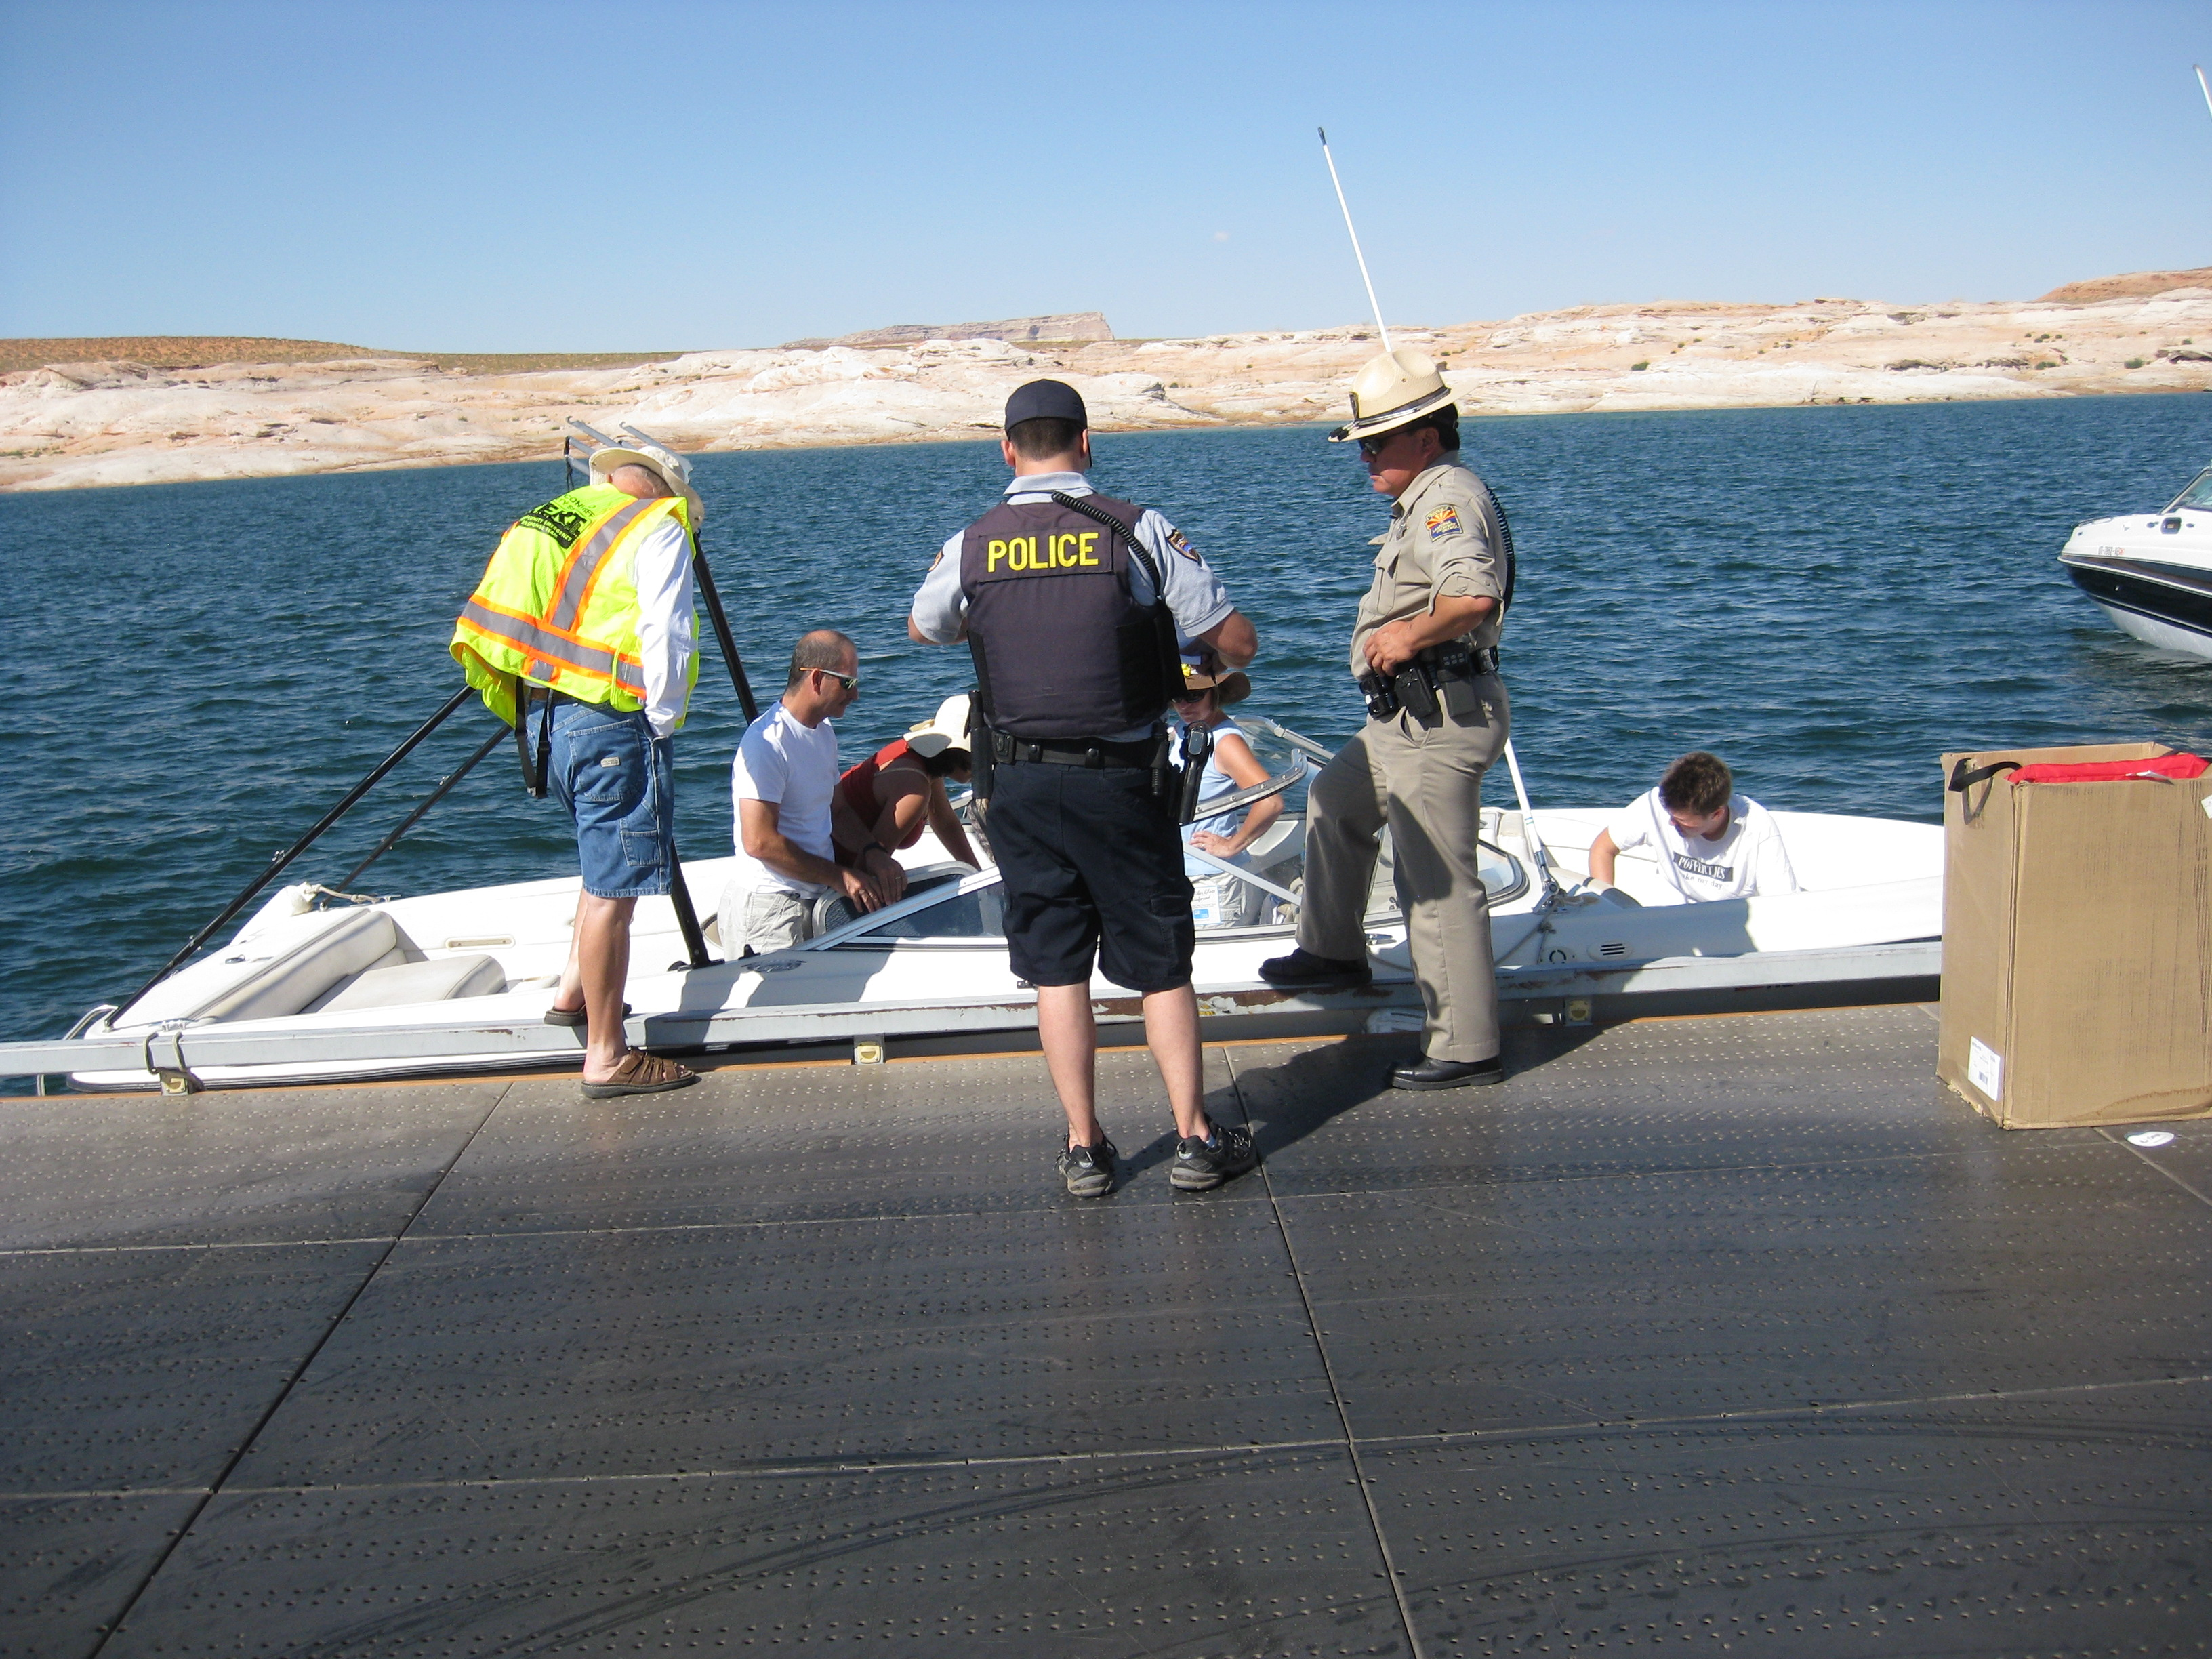 Arizona coconino county leupp - Lake Powell Oui Checkpoint